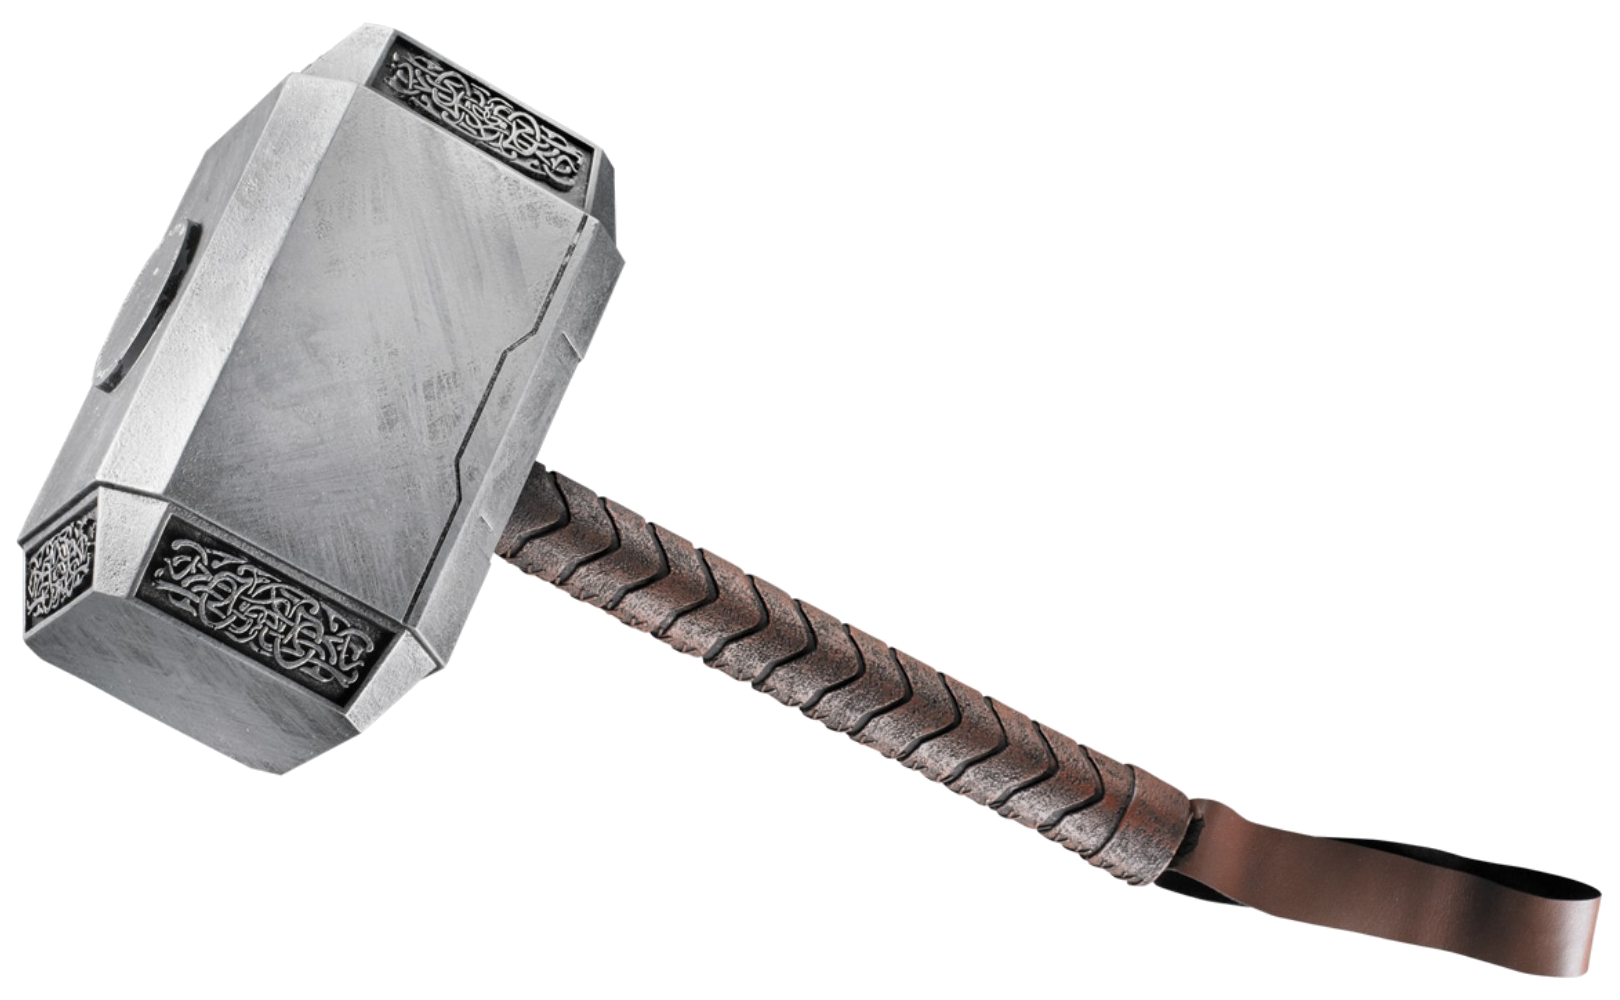 mjølnir marvel cinematic universe wiki fandom powered